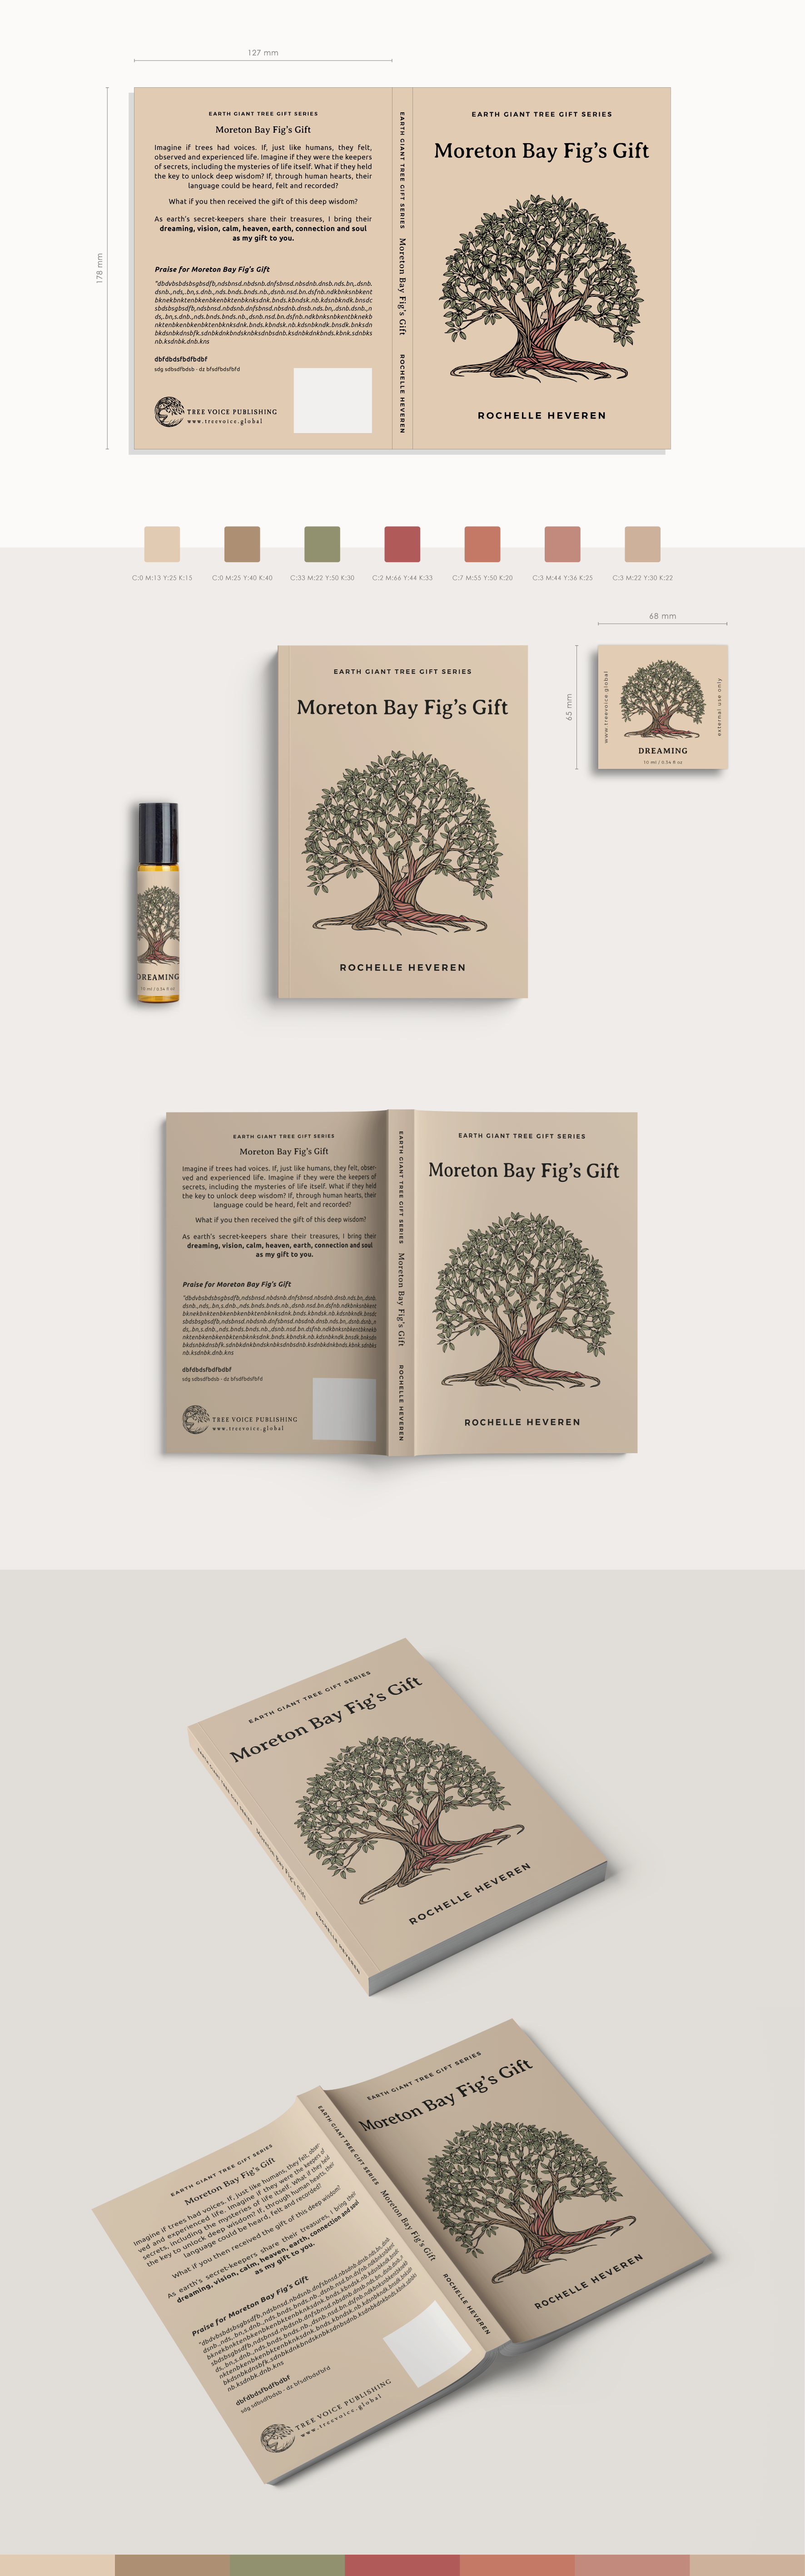 Moreton Bay Fig's Gift - Illustration and Products